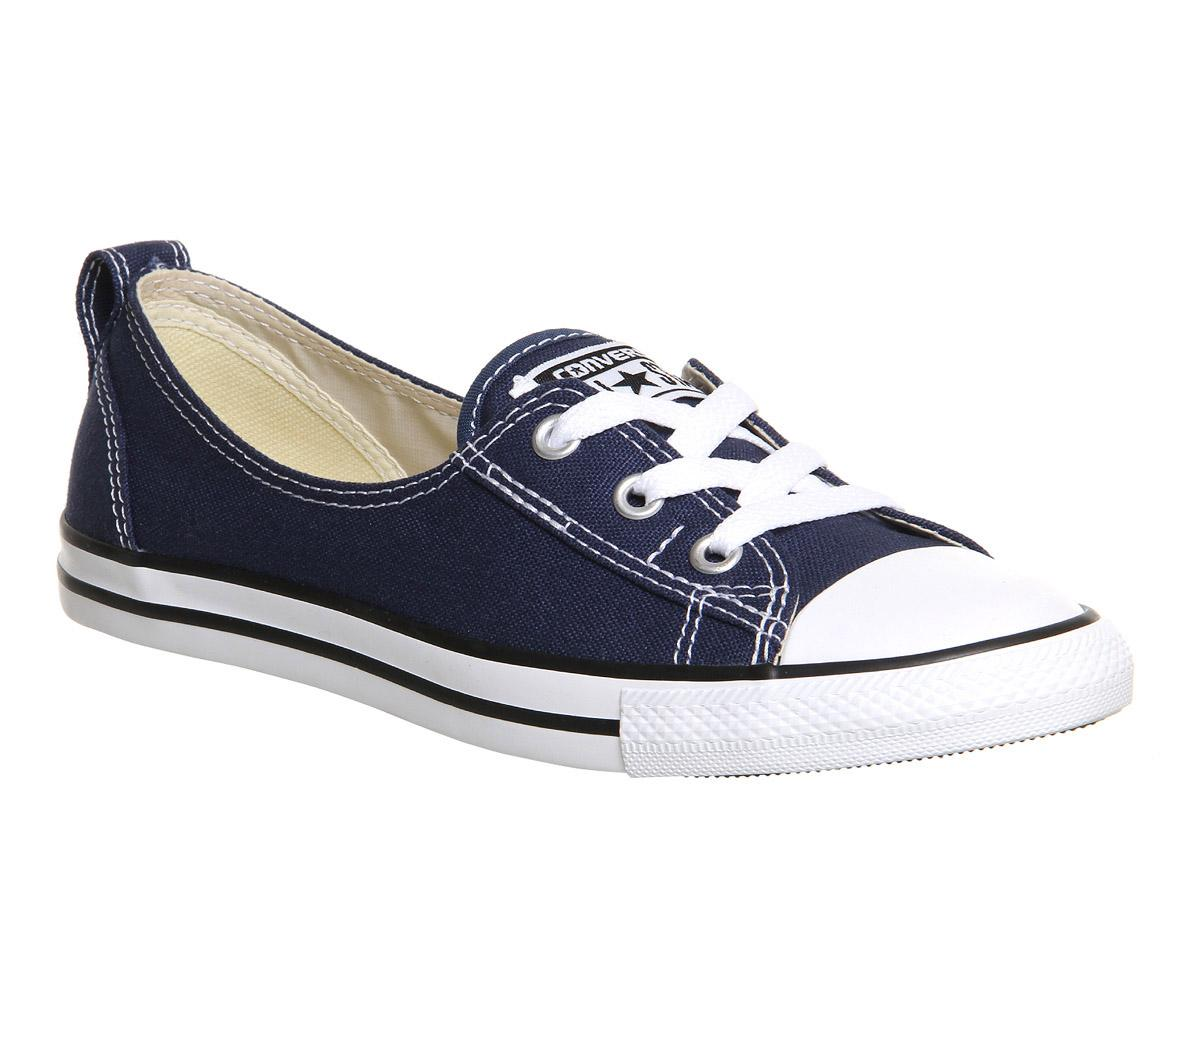 Converse Ctas Ballet Lace Navy - Hers